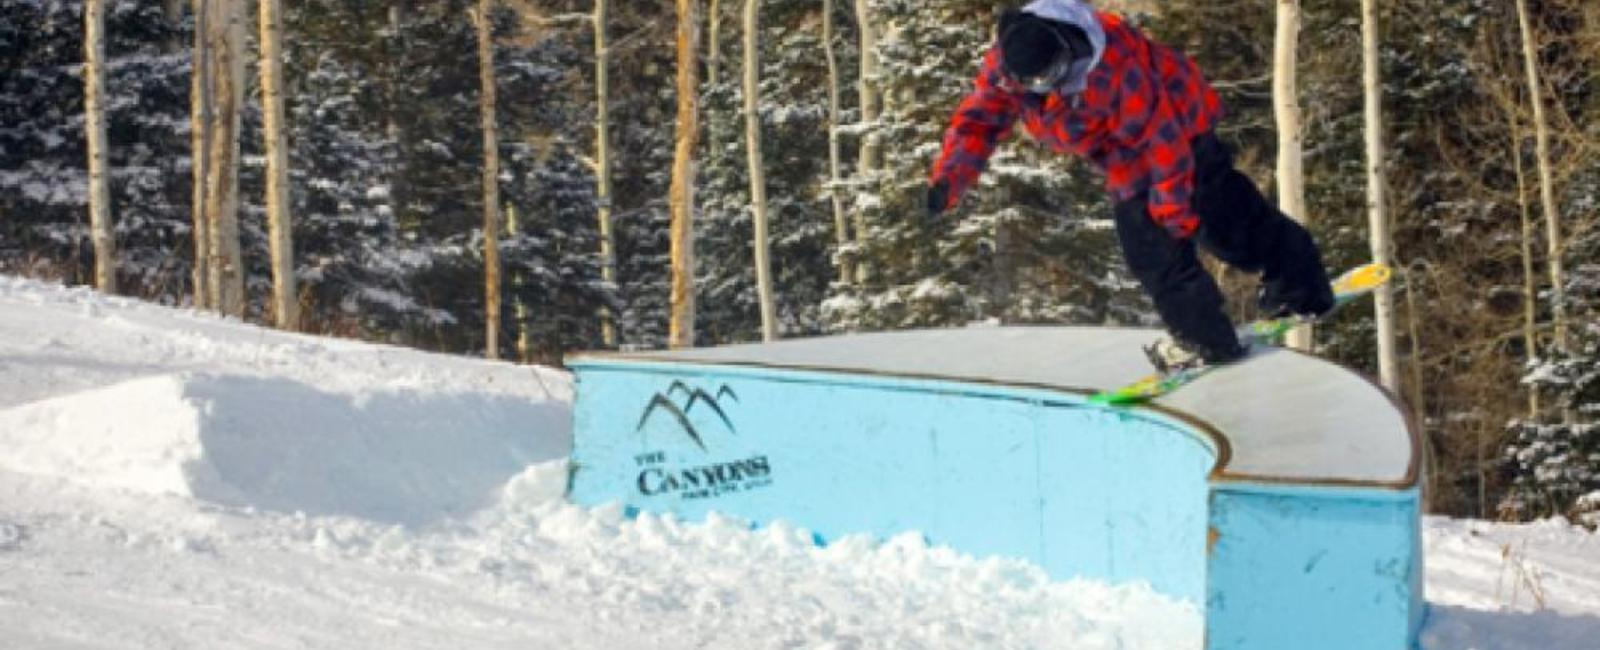 Powder Mountain's Sidecountry - Don't Mention It